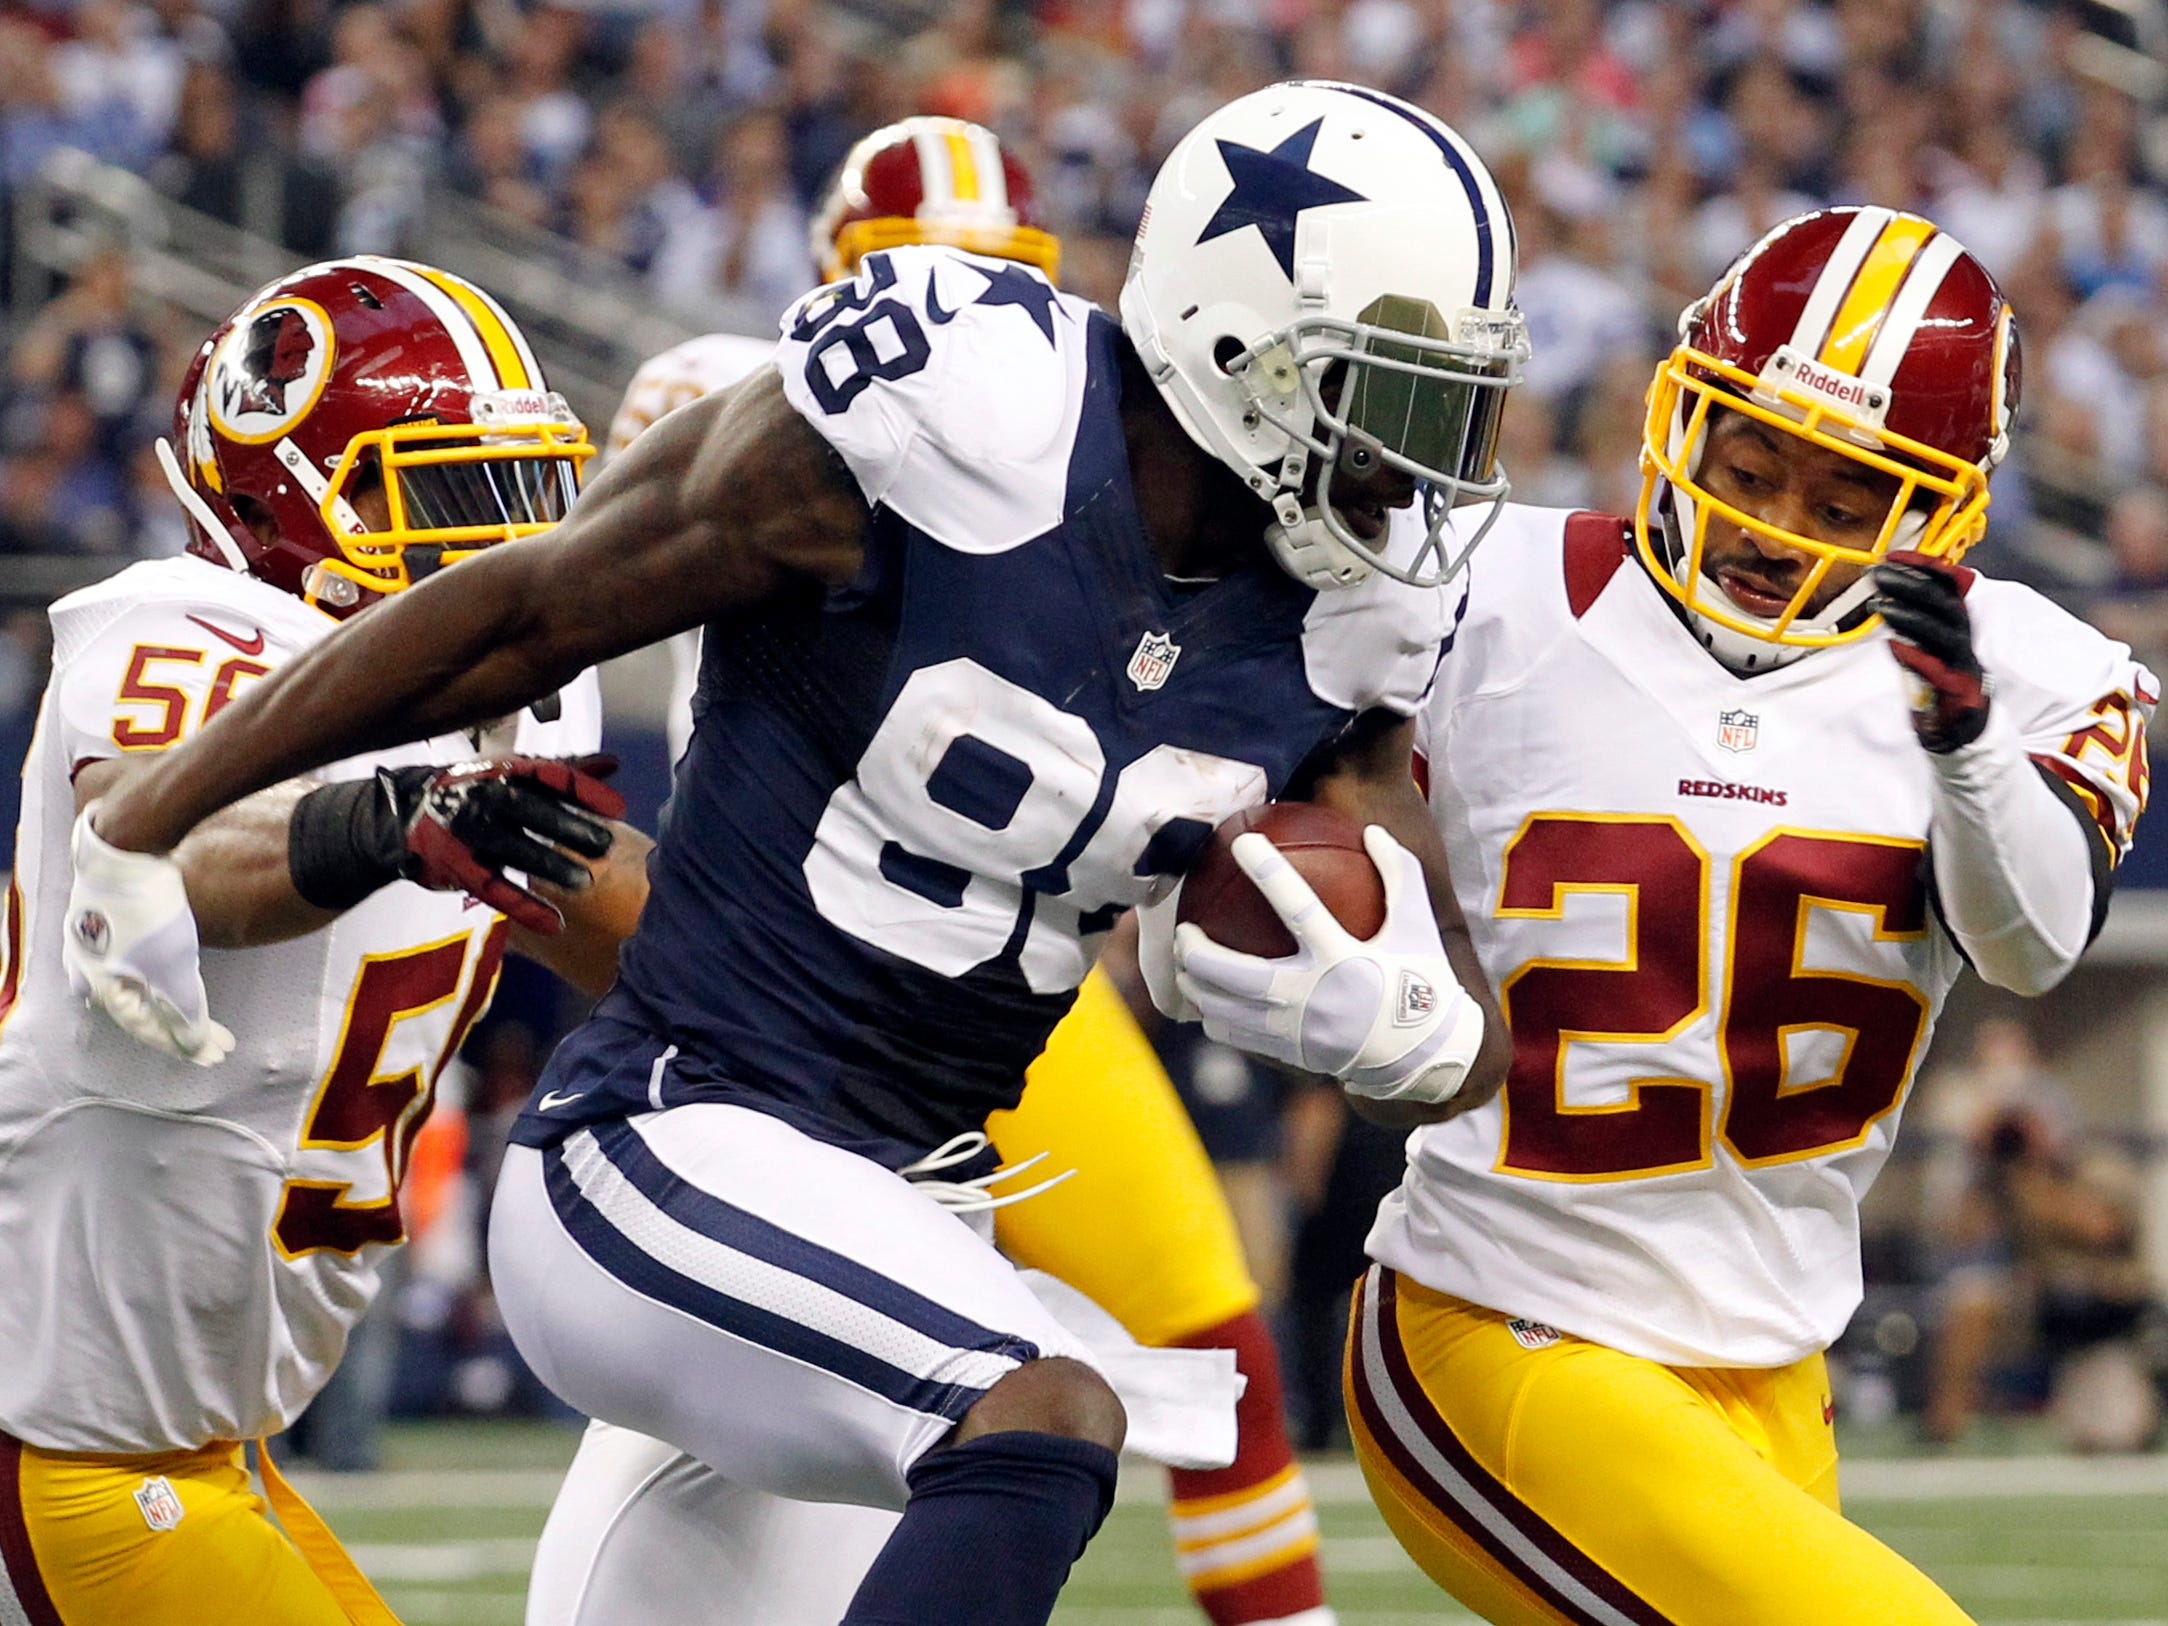 Dez Bryant is tackled by Washington Redskins' Perry Riley (56) and Josh Wilson (26) on a short run in 2012.